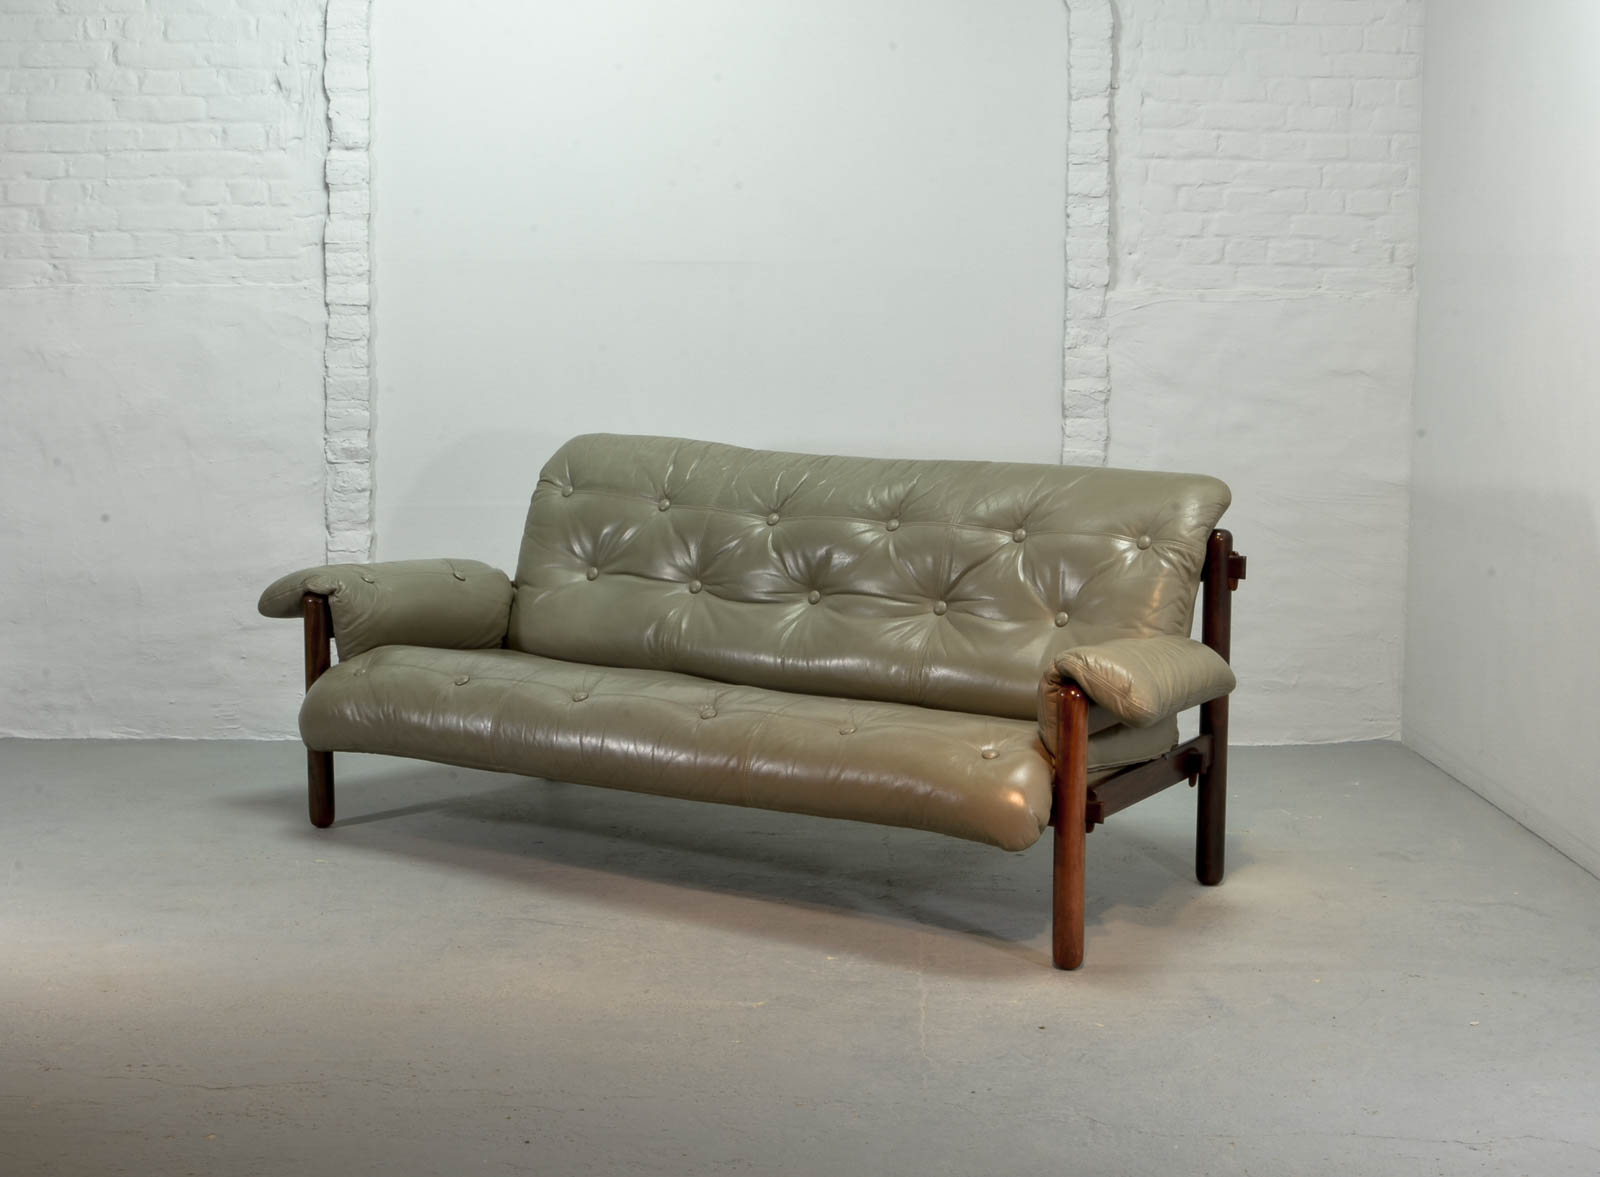 Exquisite Brazilian Leather and Jacarandá Wood Sofa by Jean ...